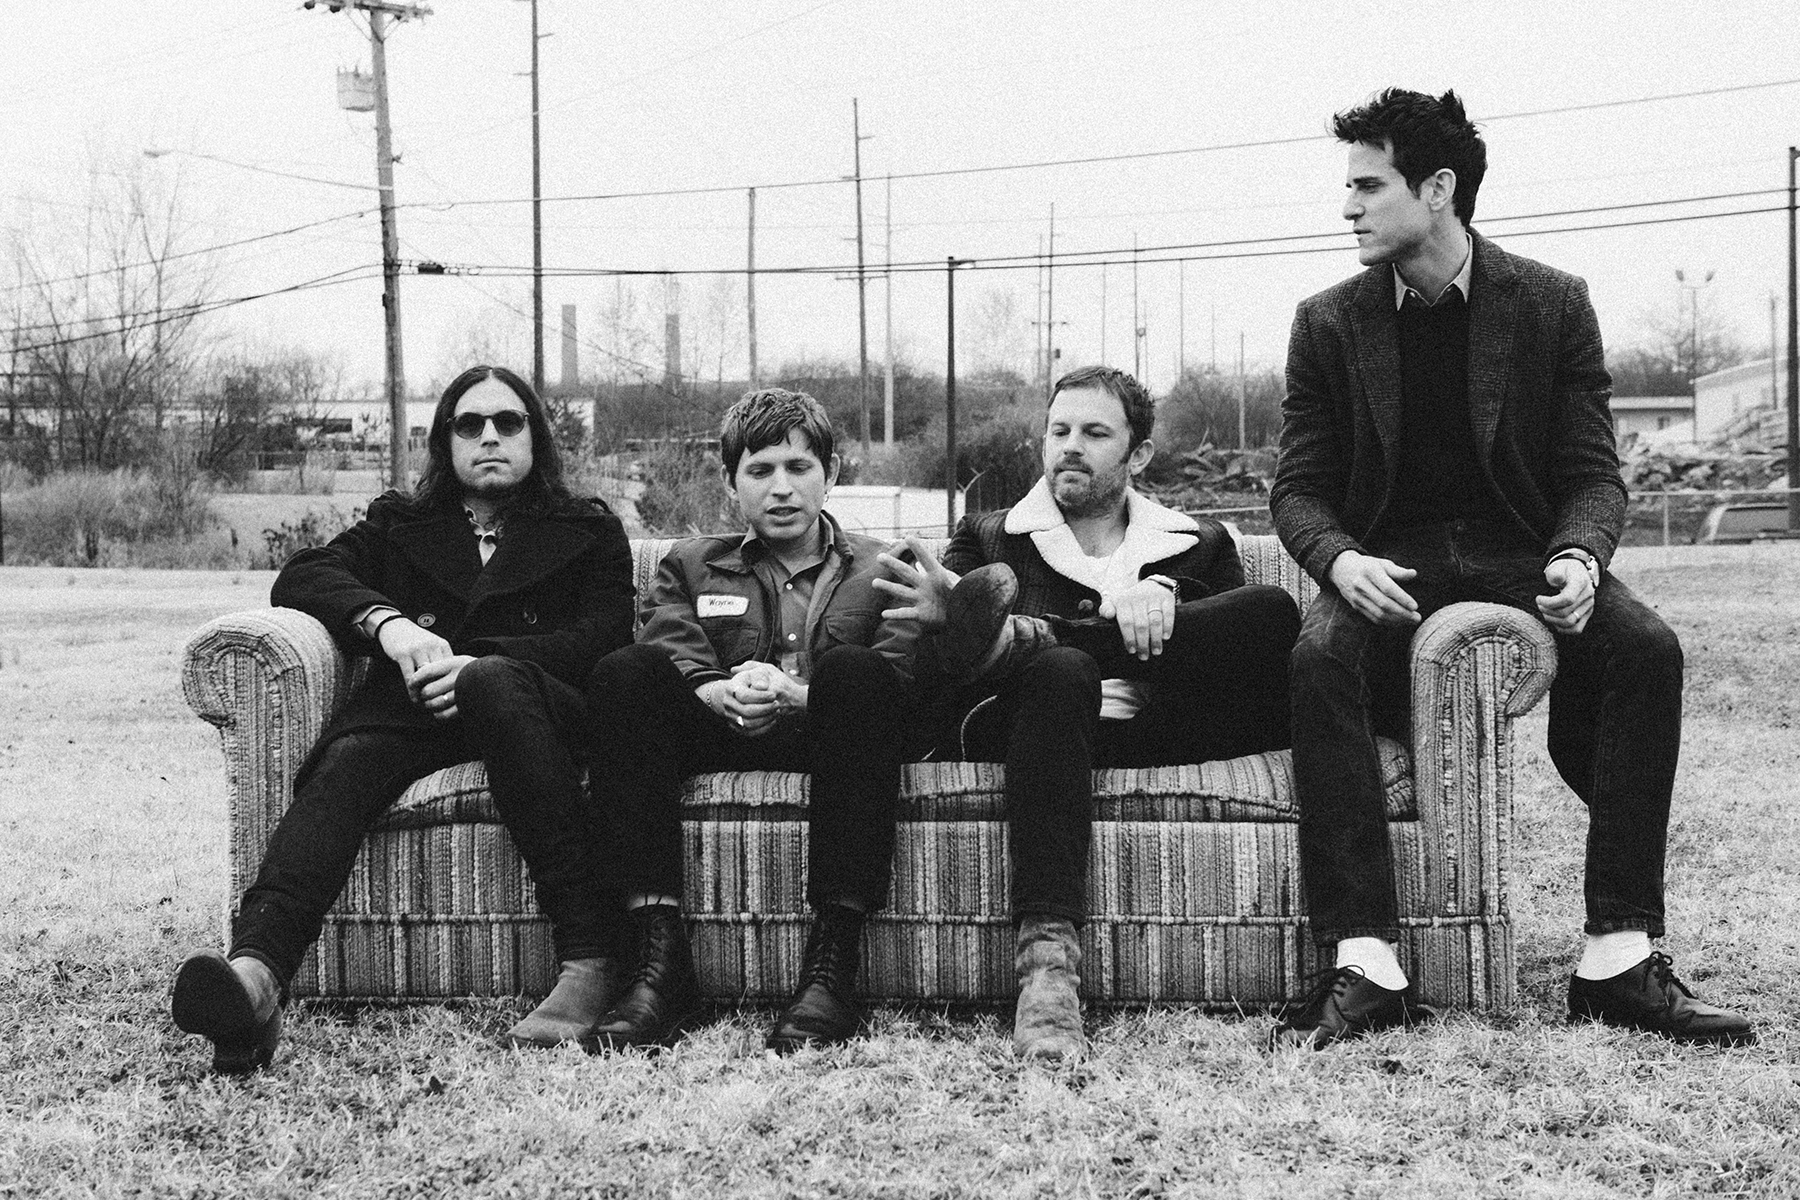 Kings of Leon Will Be the First Band to Release an Album as an NFT